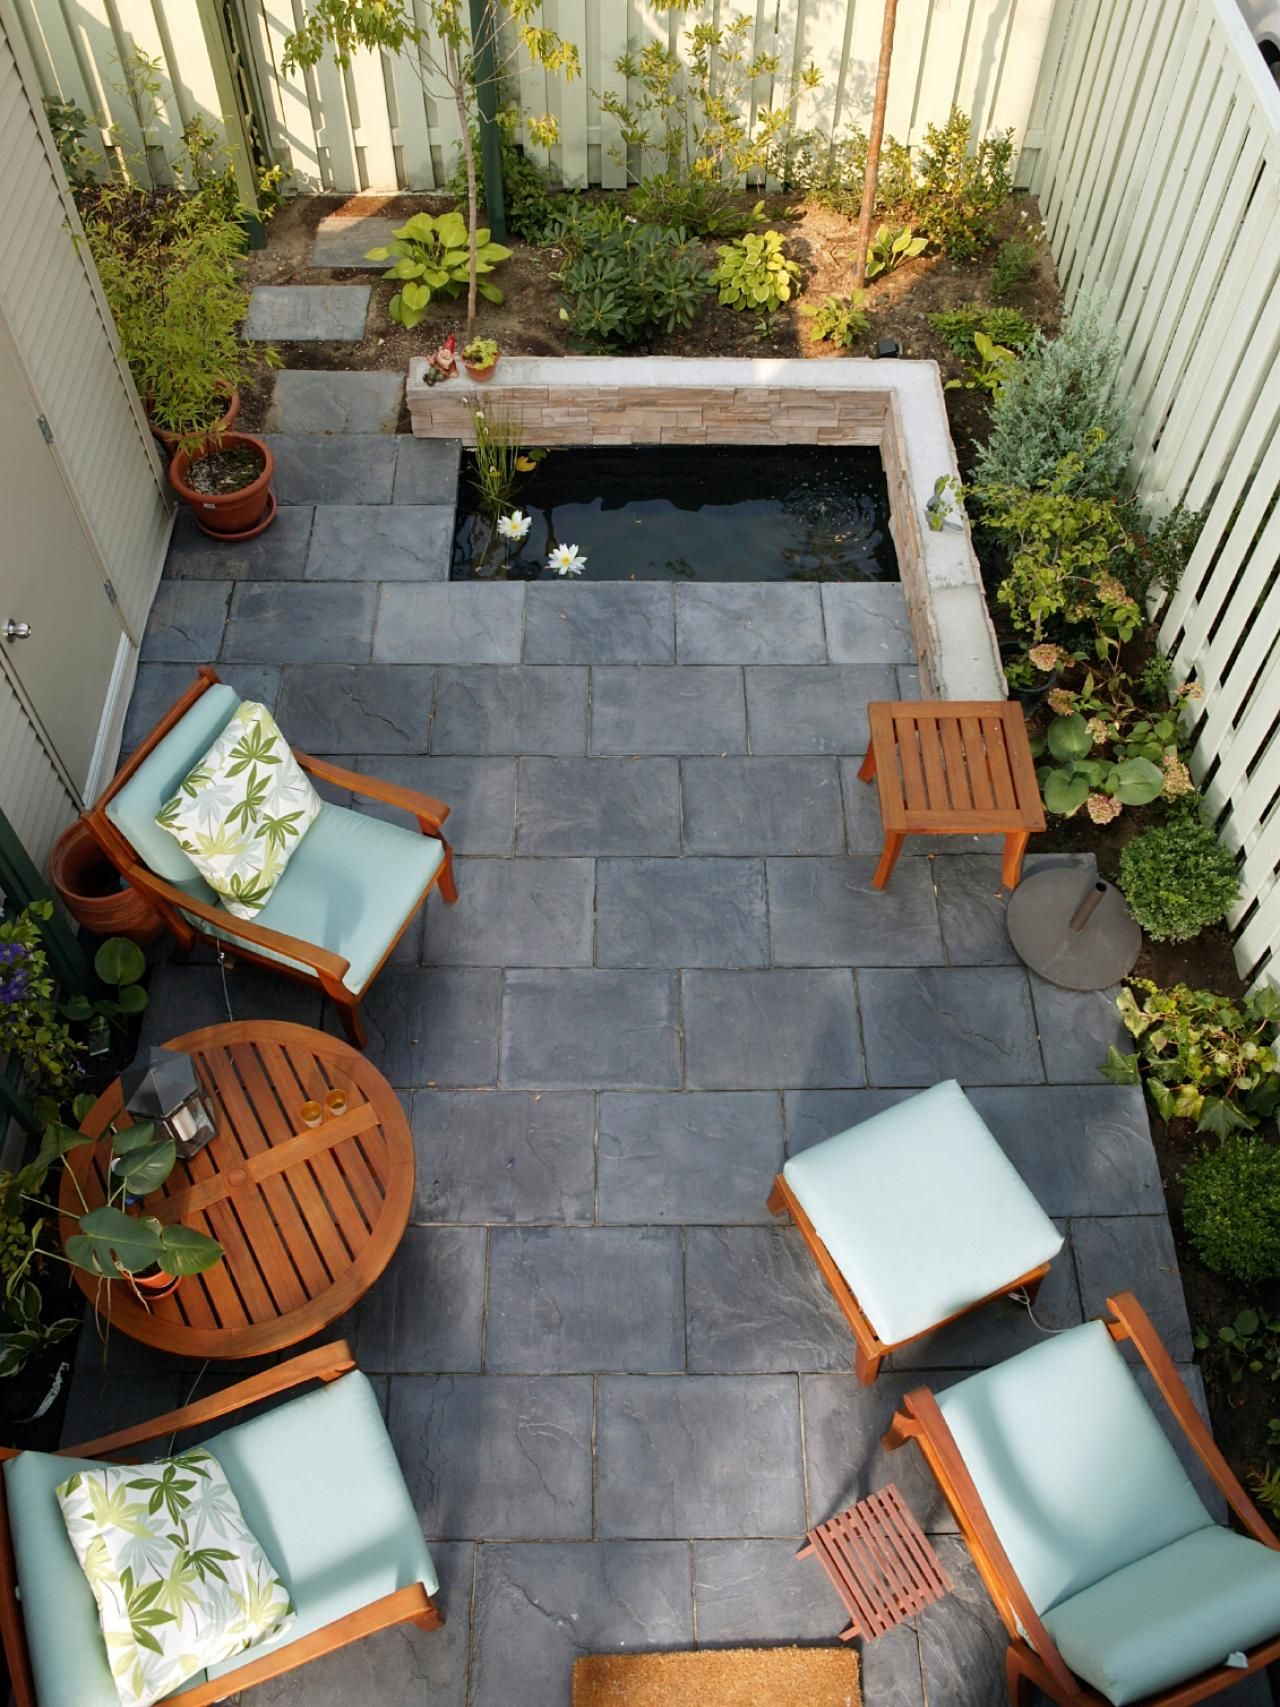 17 best images about small courtyard ideas on pinterest gardens garden ideas and patio ideas